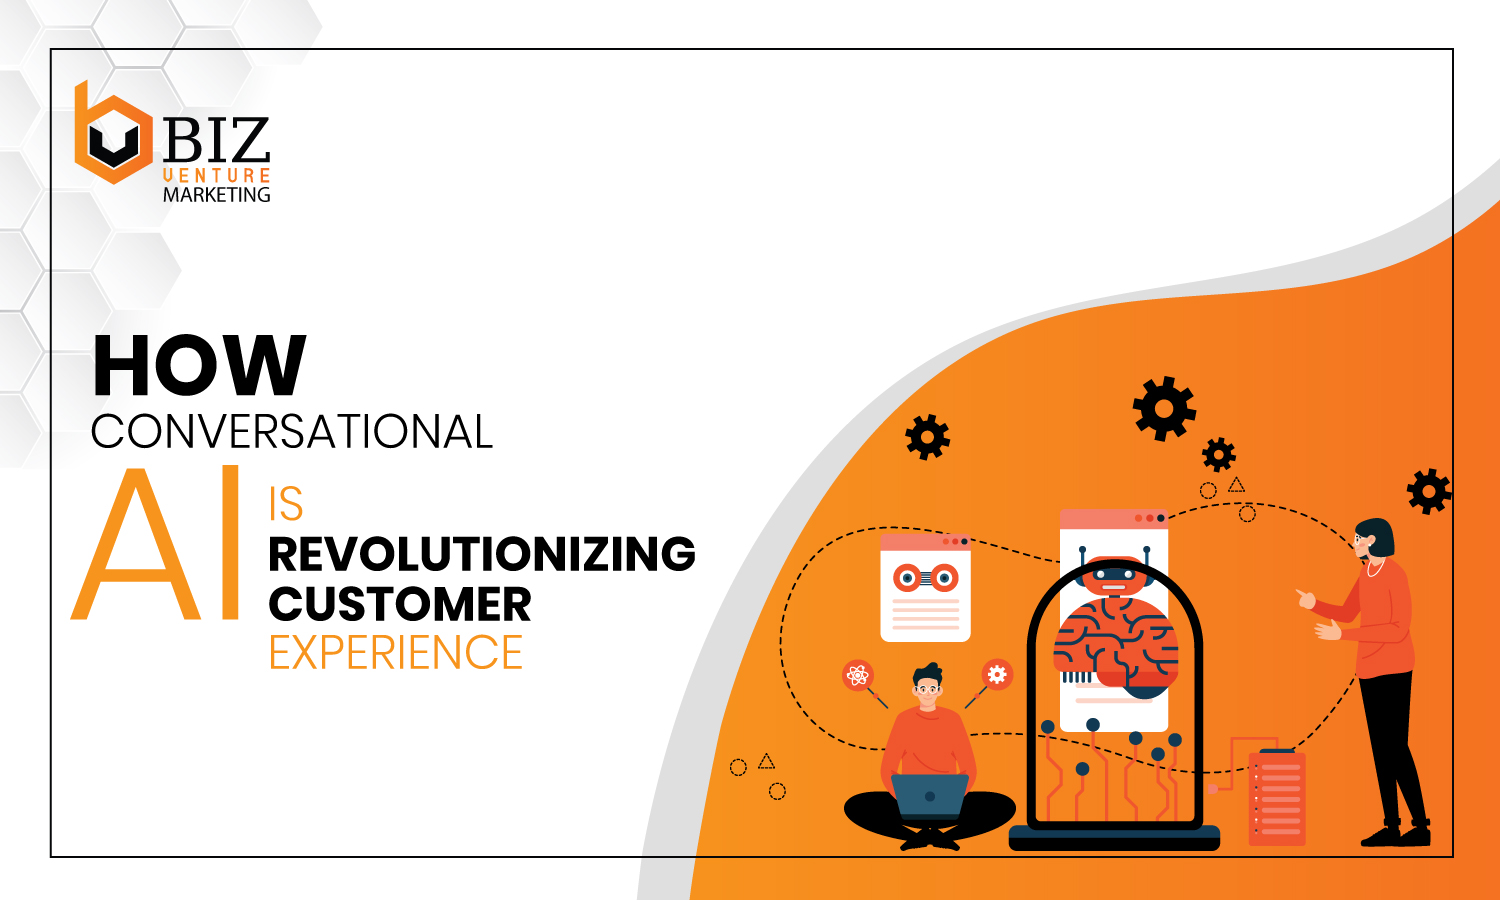 Conversational-AI-Revolutionizing-Customer-Experience